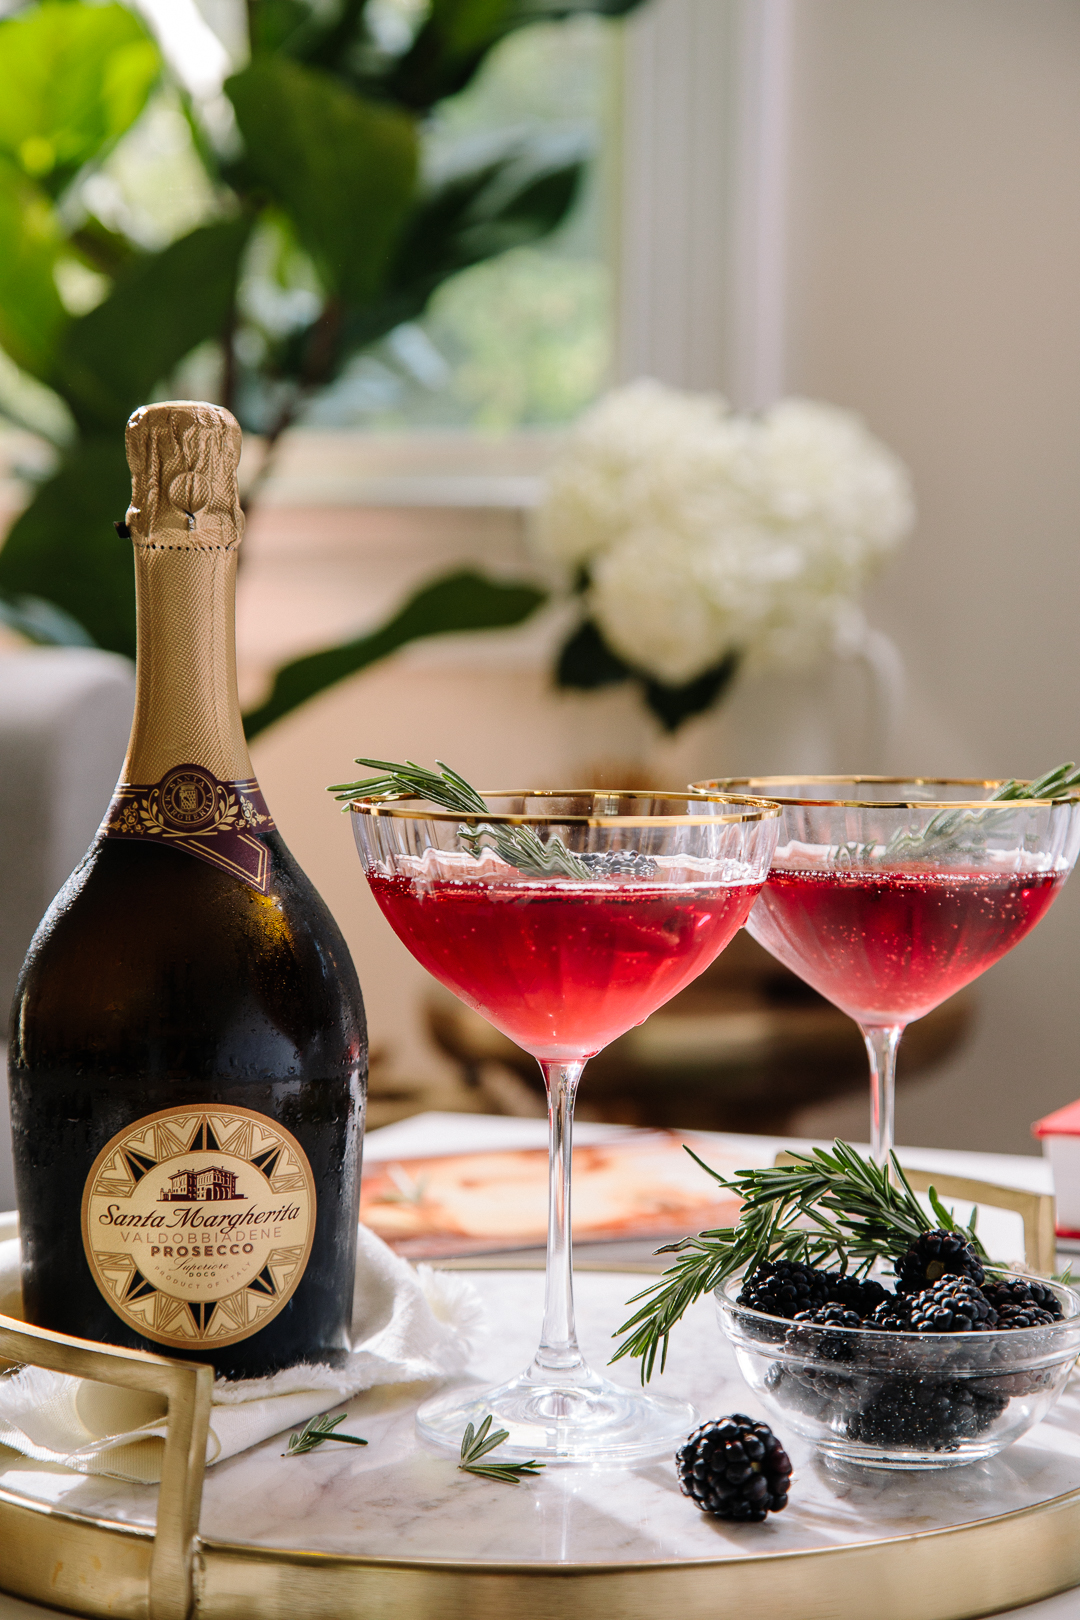 cocktails with Santa margherita